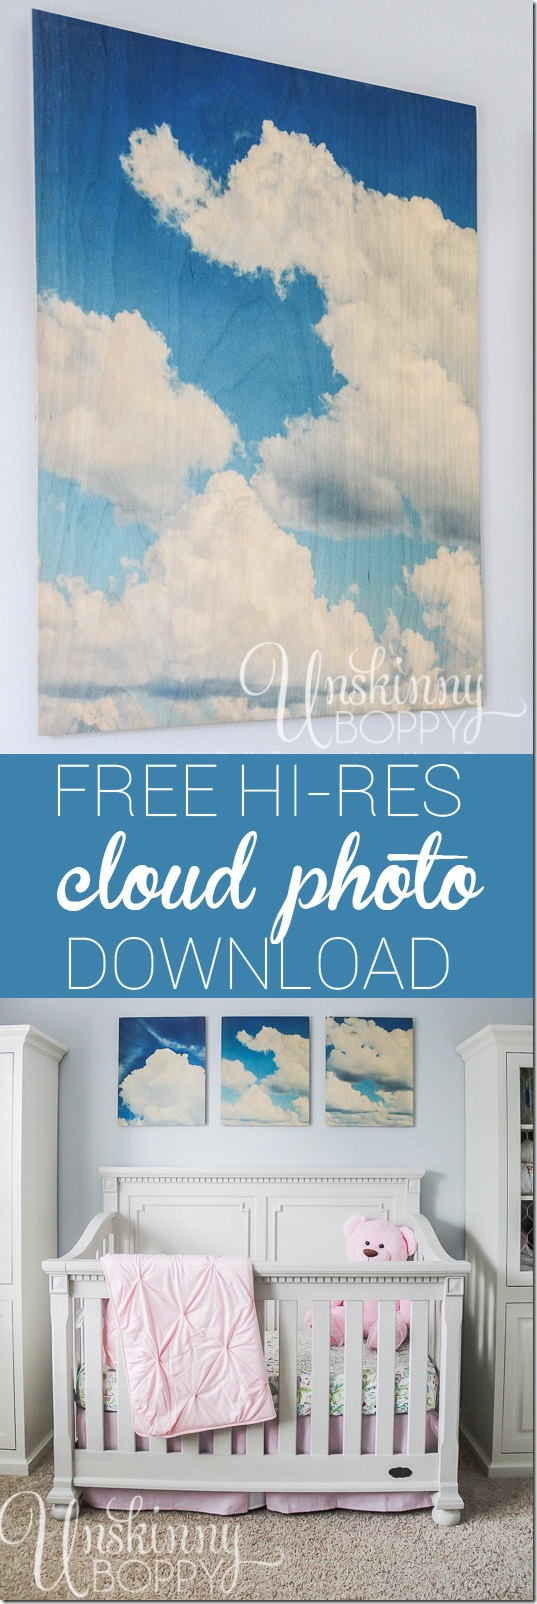 Free hi-res cloud photo download